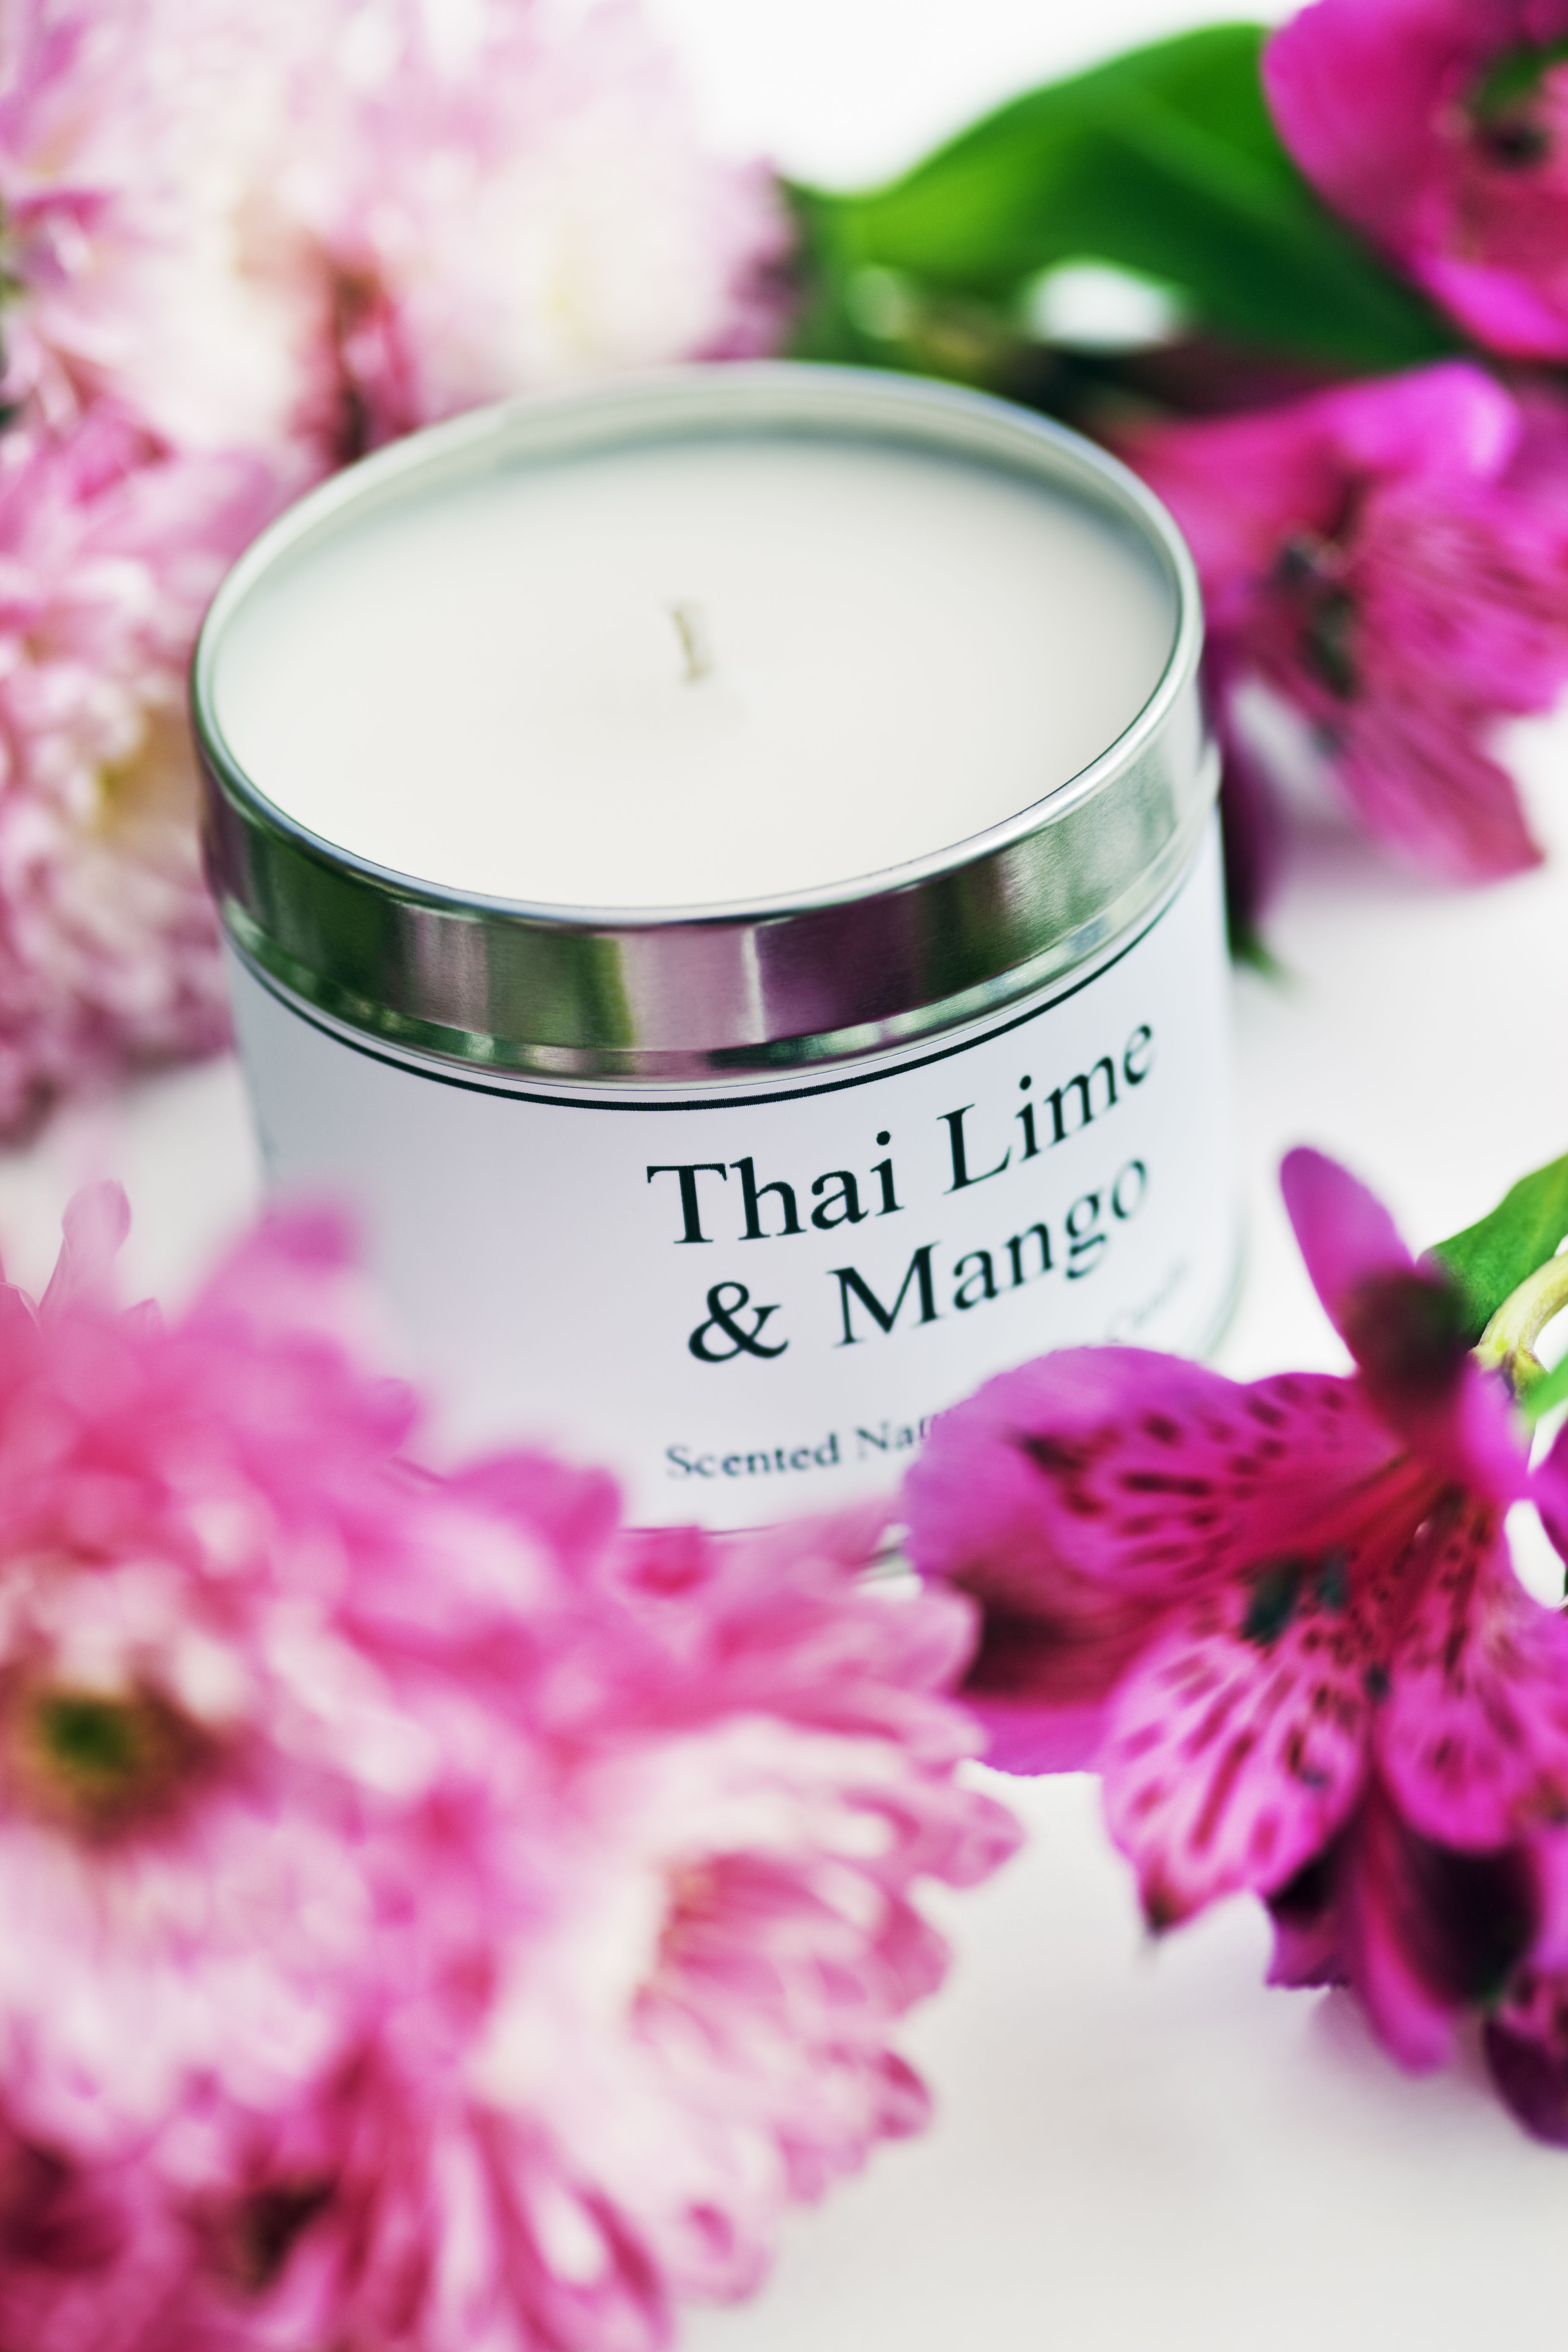 Thai Lime & Mango. scented natural soy wax large 200g tin travel ...